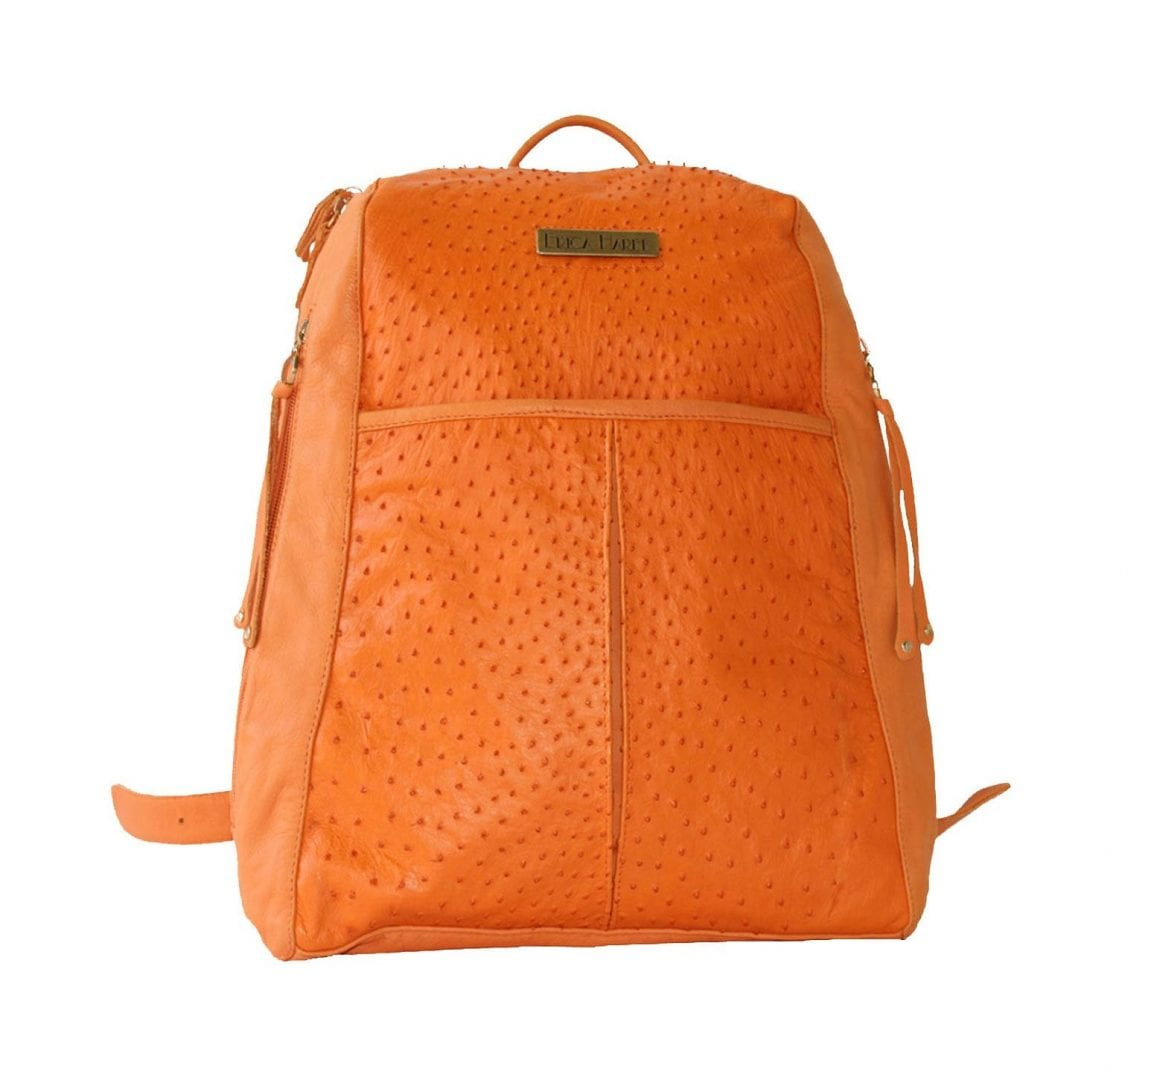 Orange Ostrich Leather Backpack | Ostrich and Leather Backpack